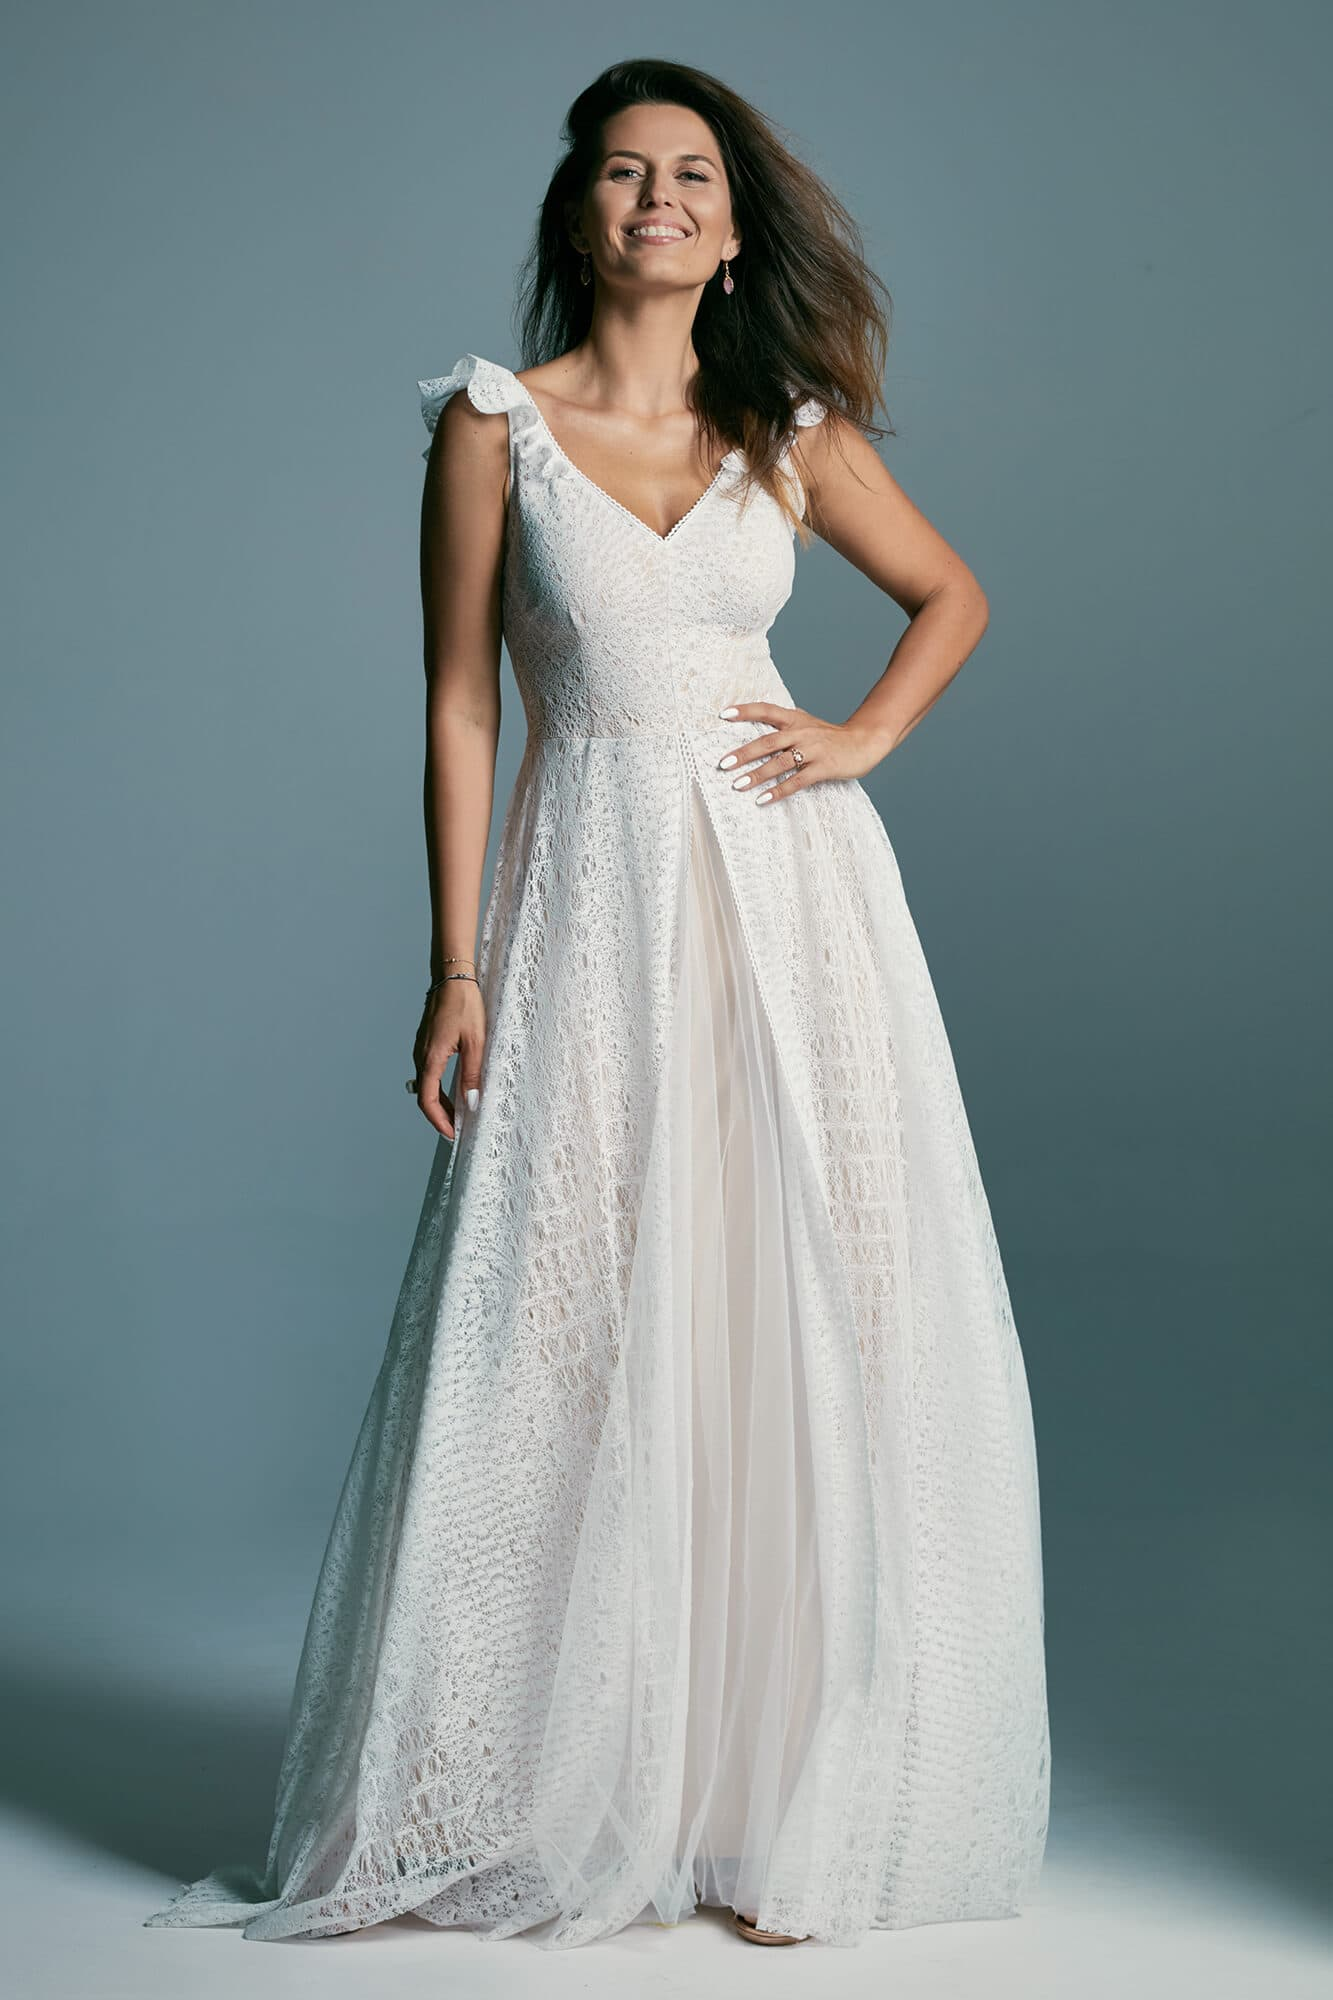 An airy wedding dress made of beautiful lace with an irregular pattern Santorini 4